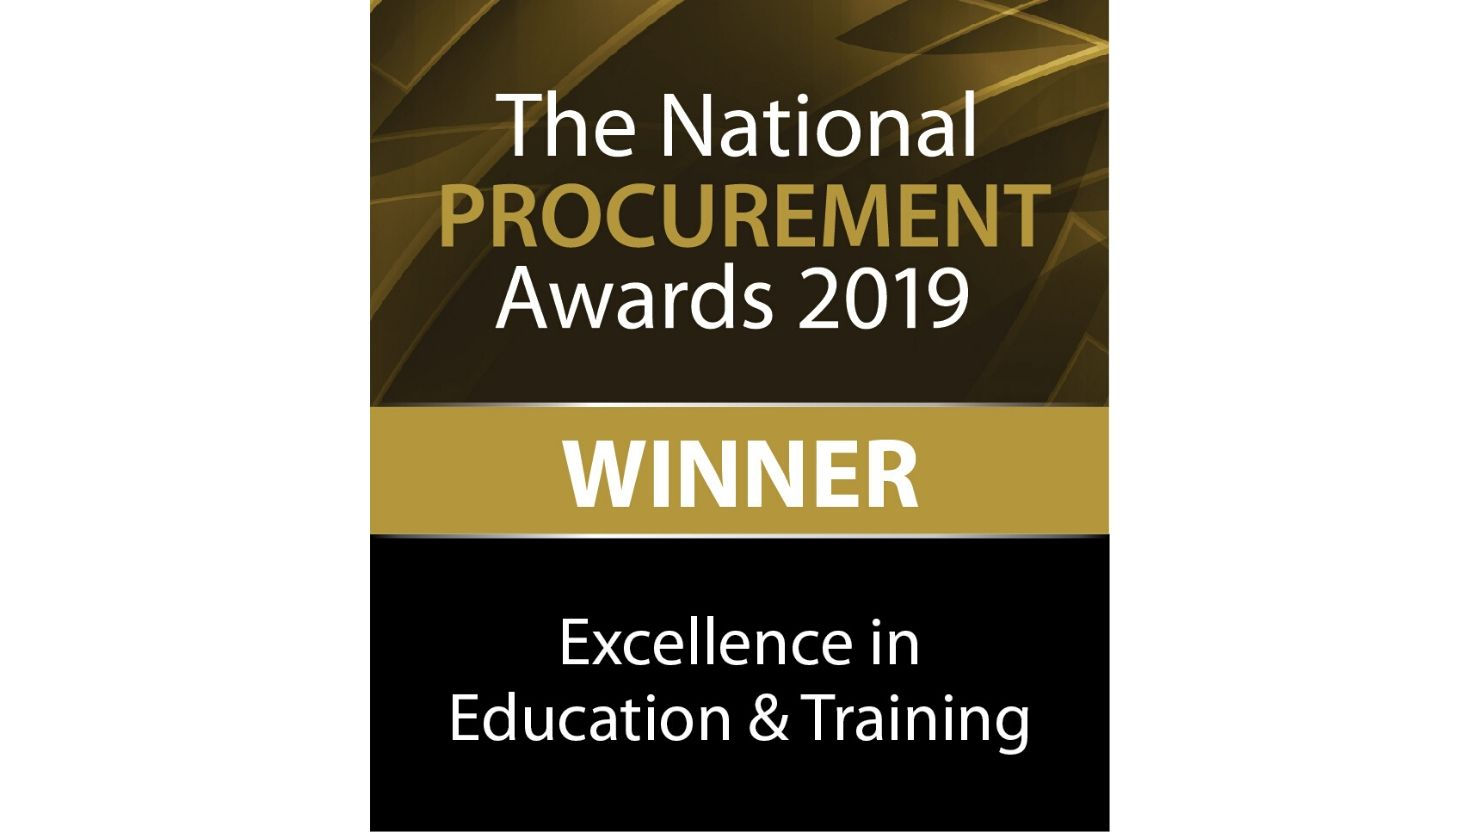 MSc in Procurement Excellence in Education award